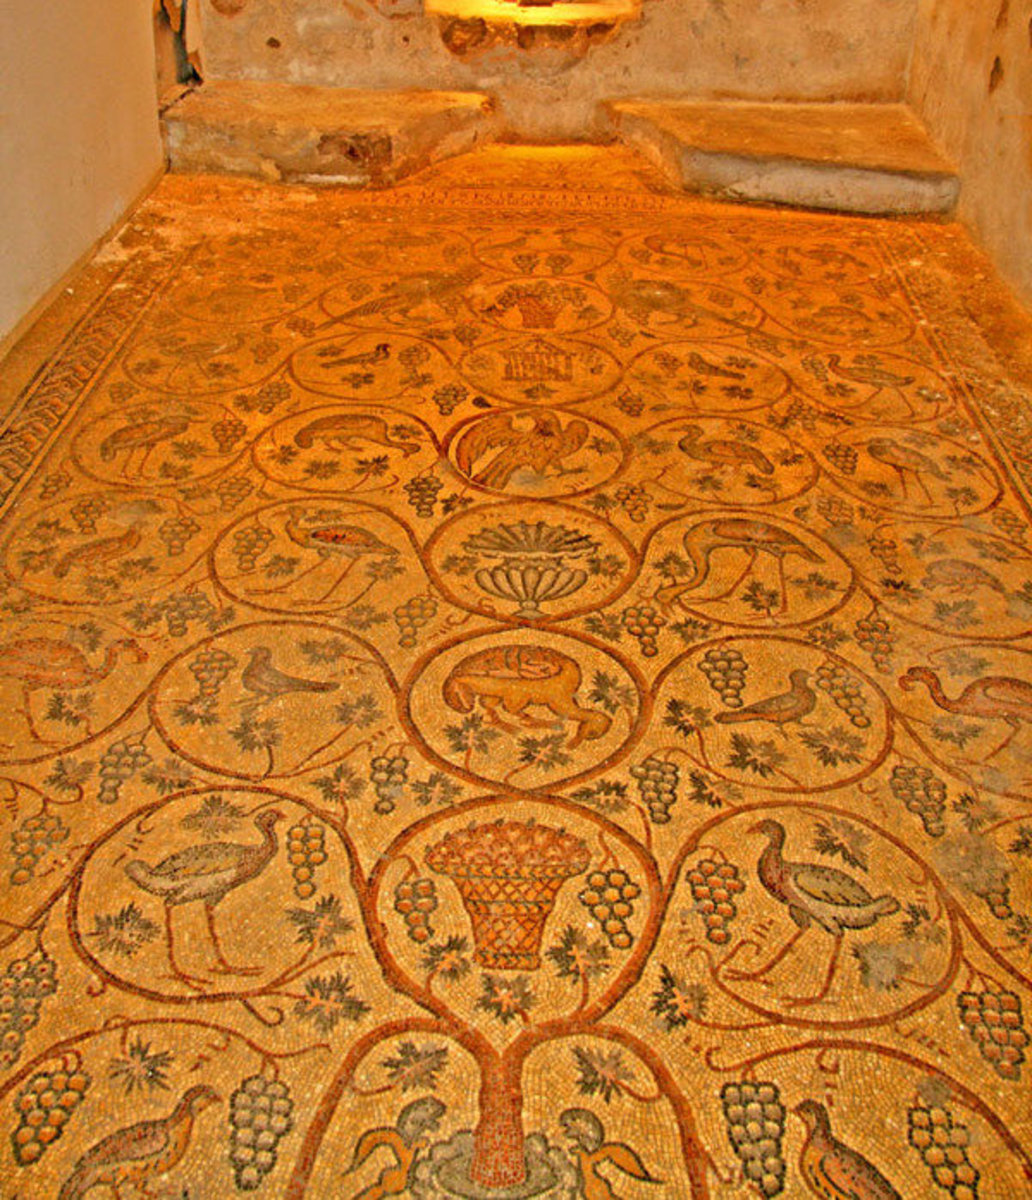 Armenian Bird Mosaic Floor in Jerusalem